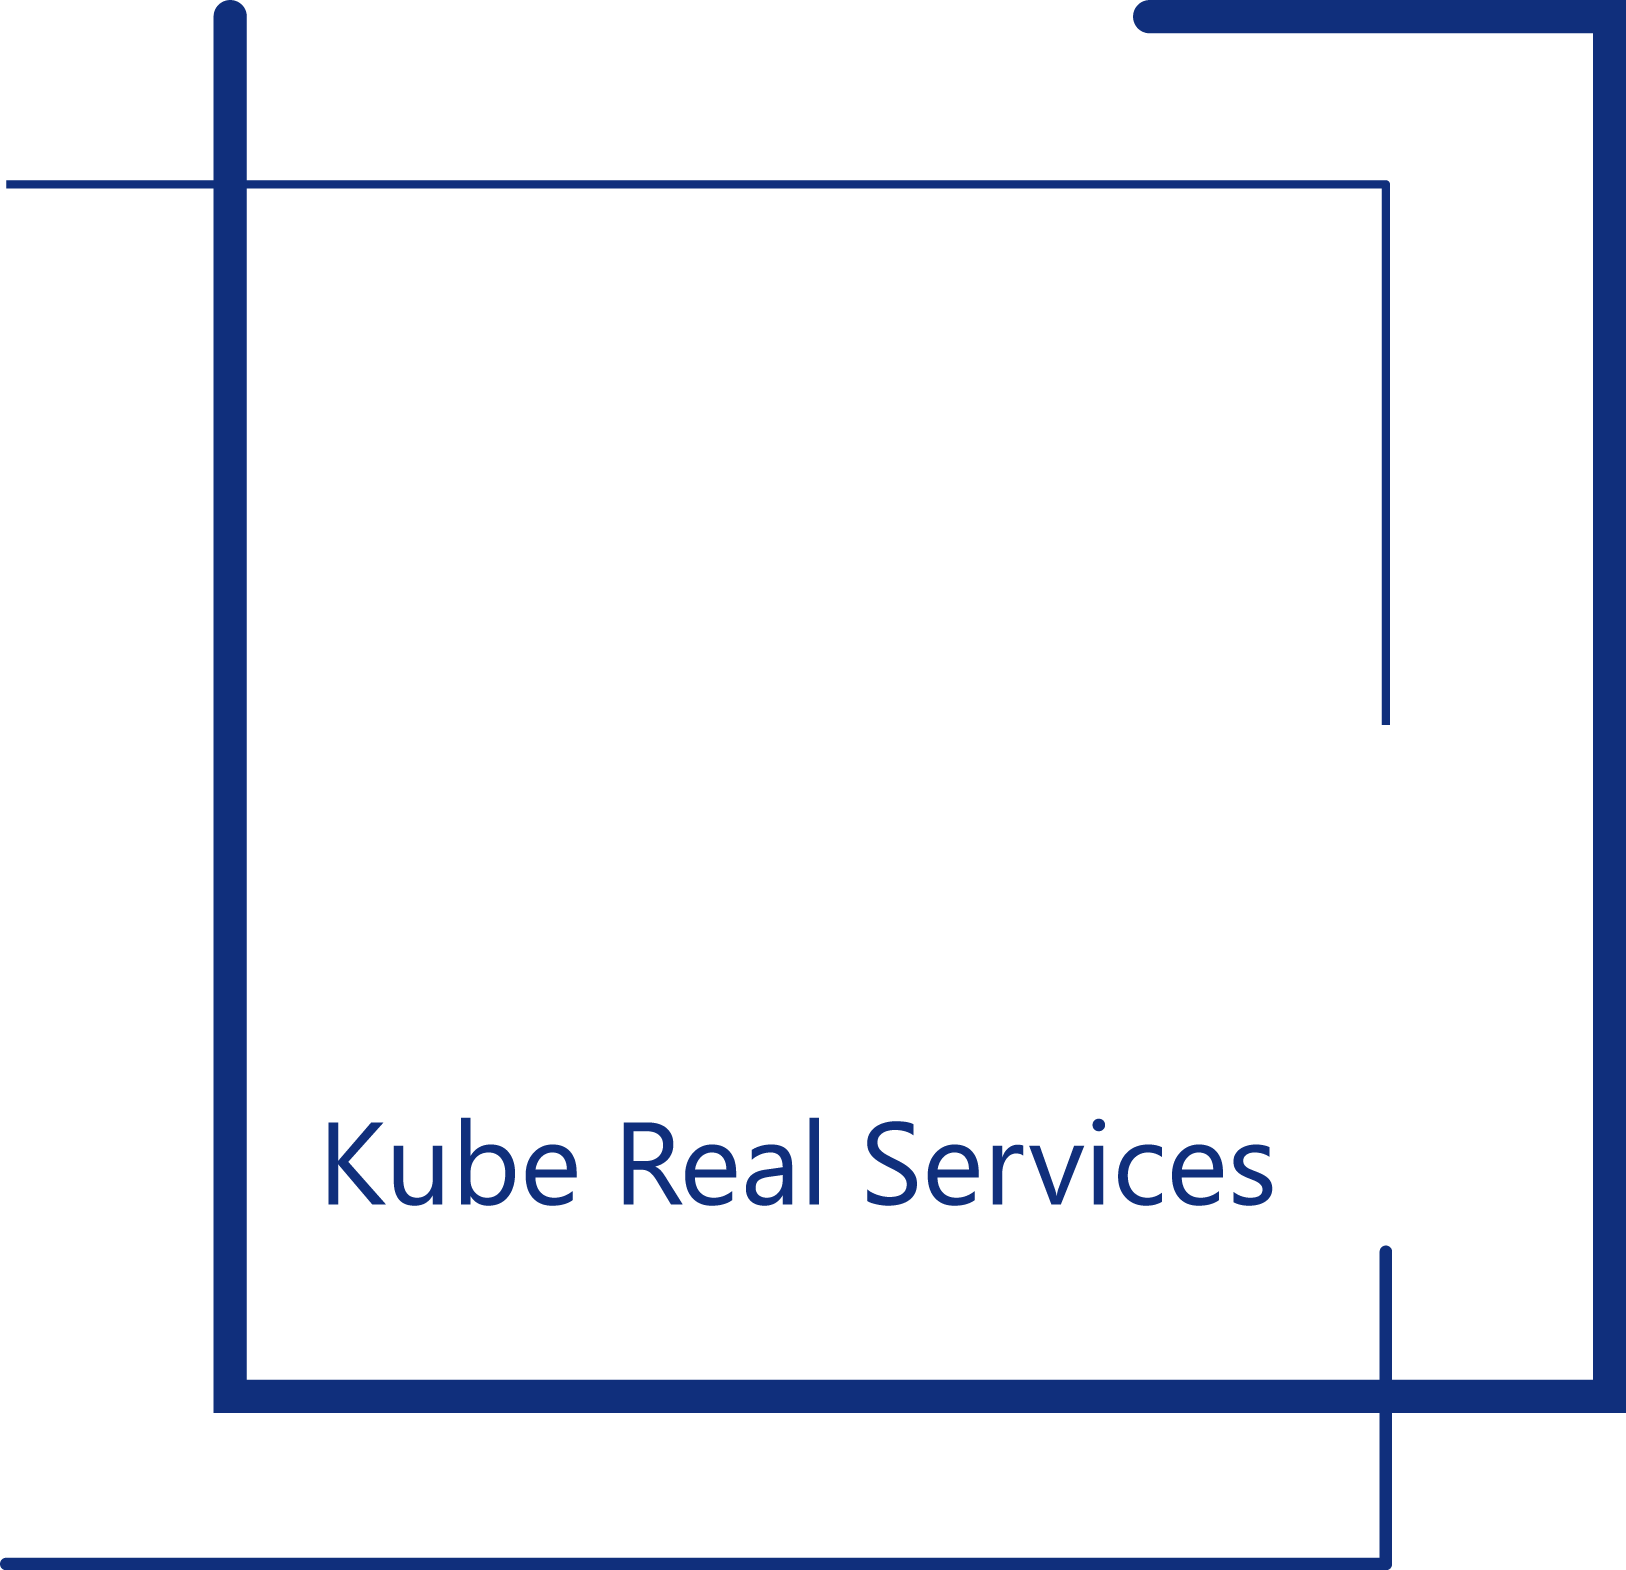 Kube Real Services